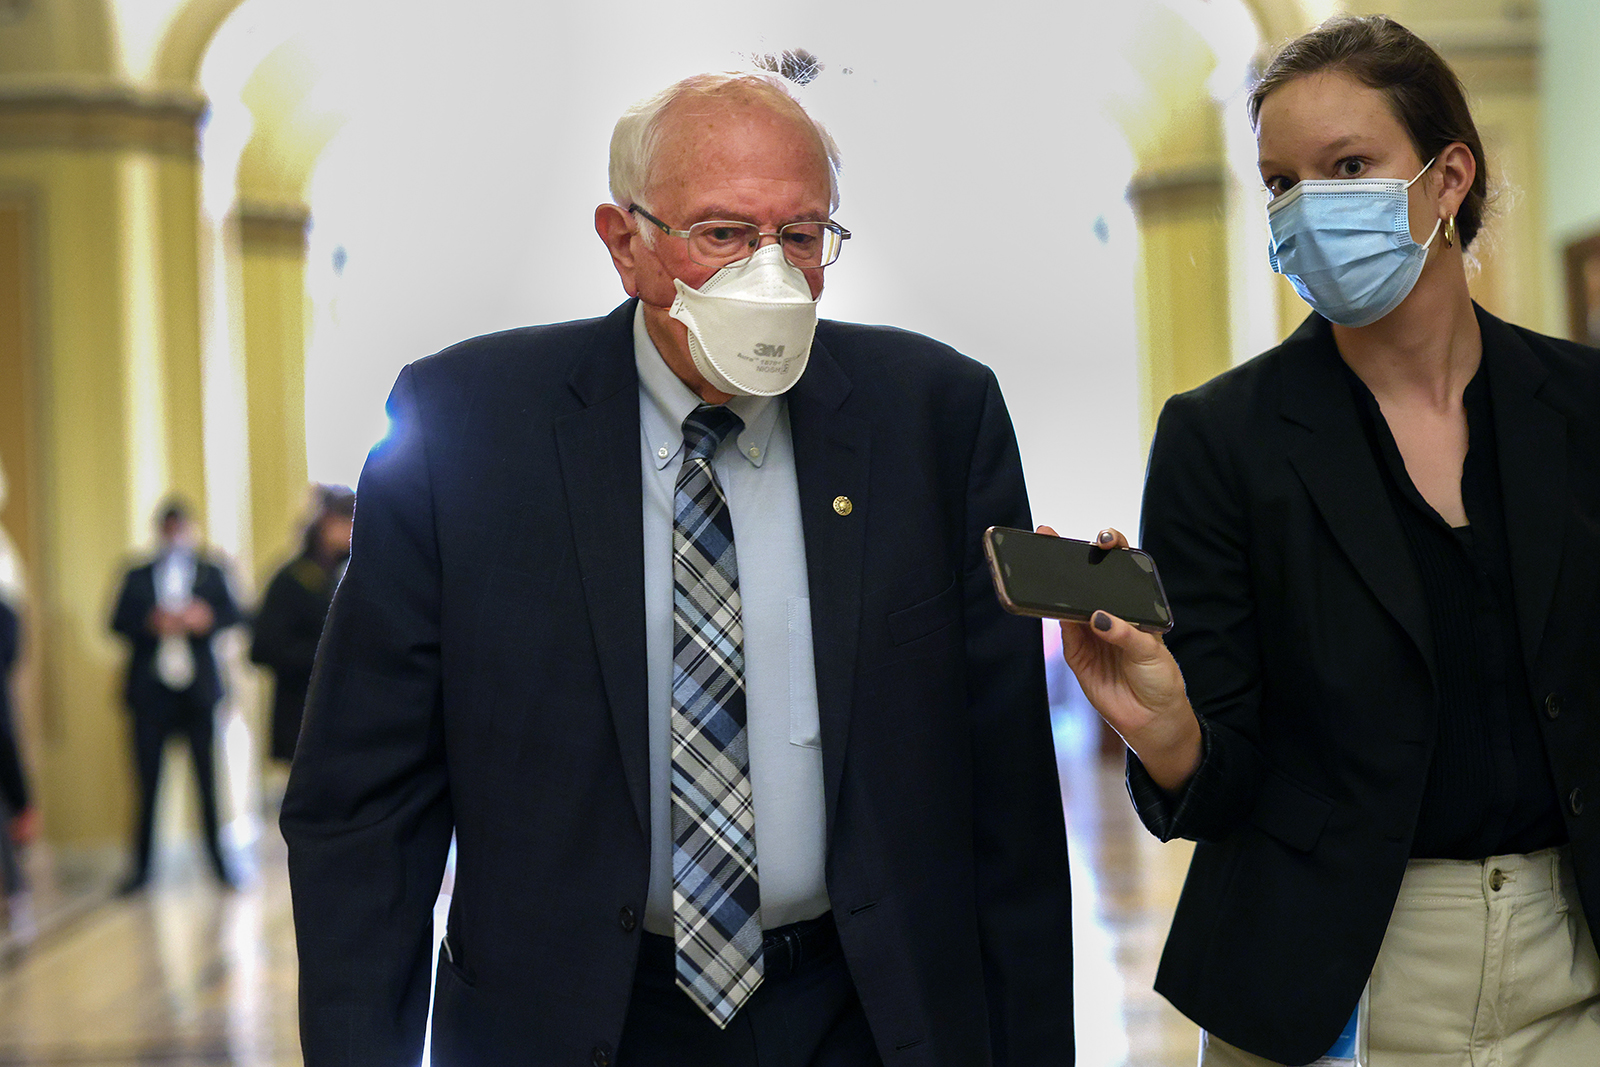 Sen. Bernie Sanders walks to a Democratic policy luncheon at the U.S. Capitol on September 14, in Washington.